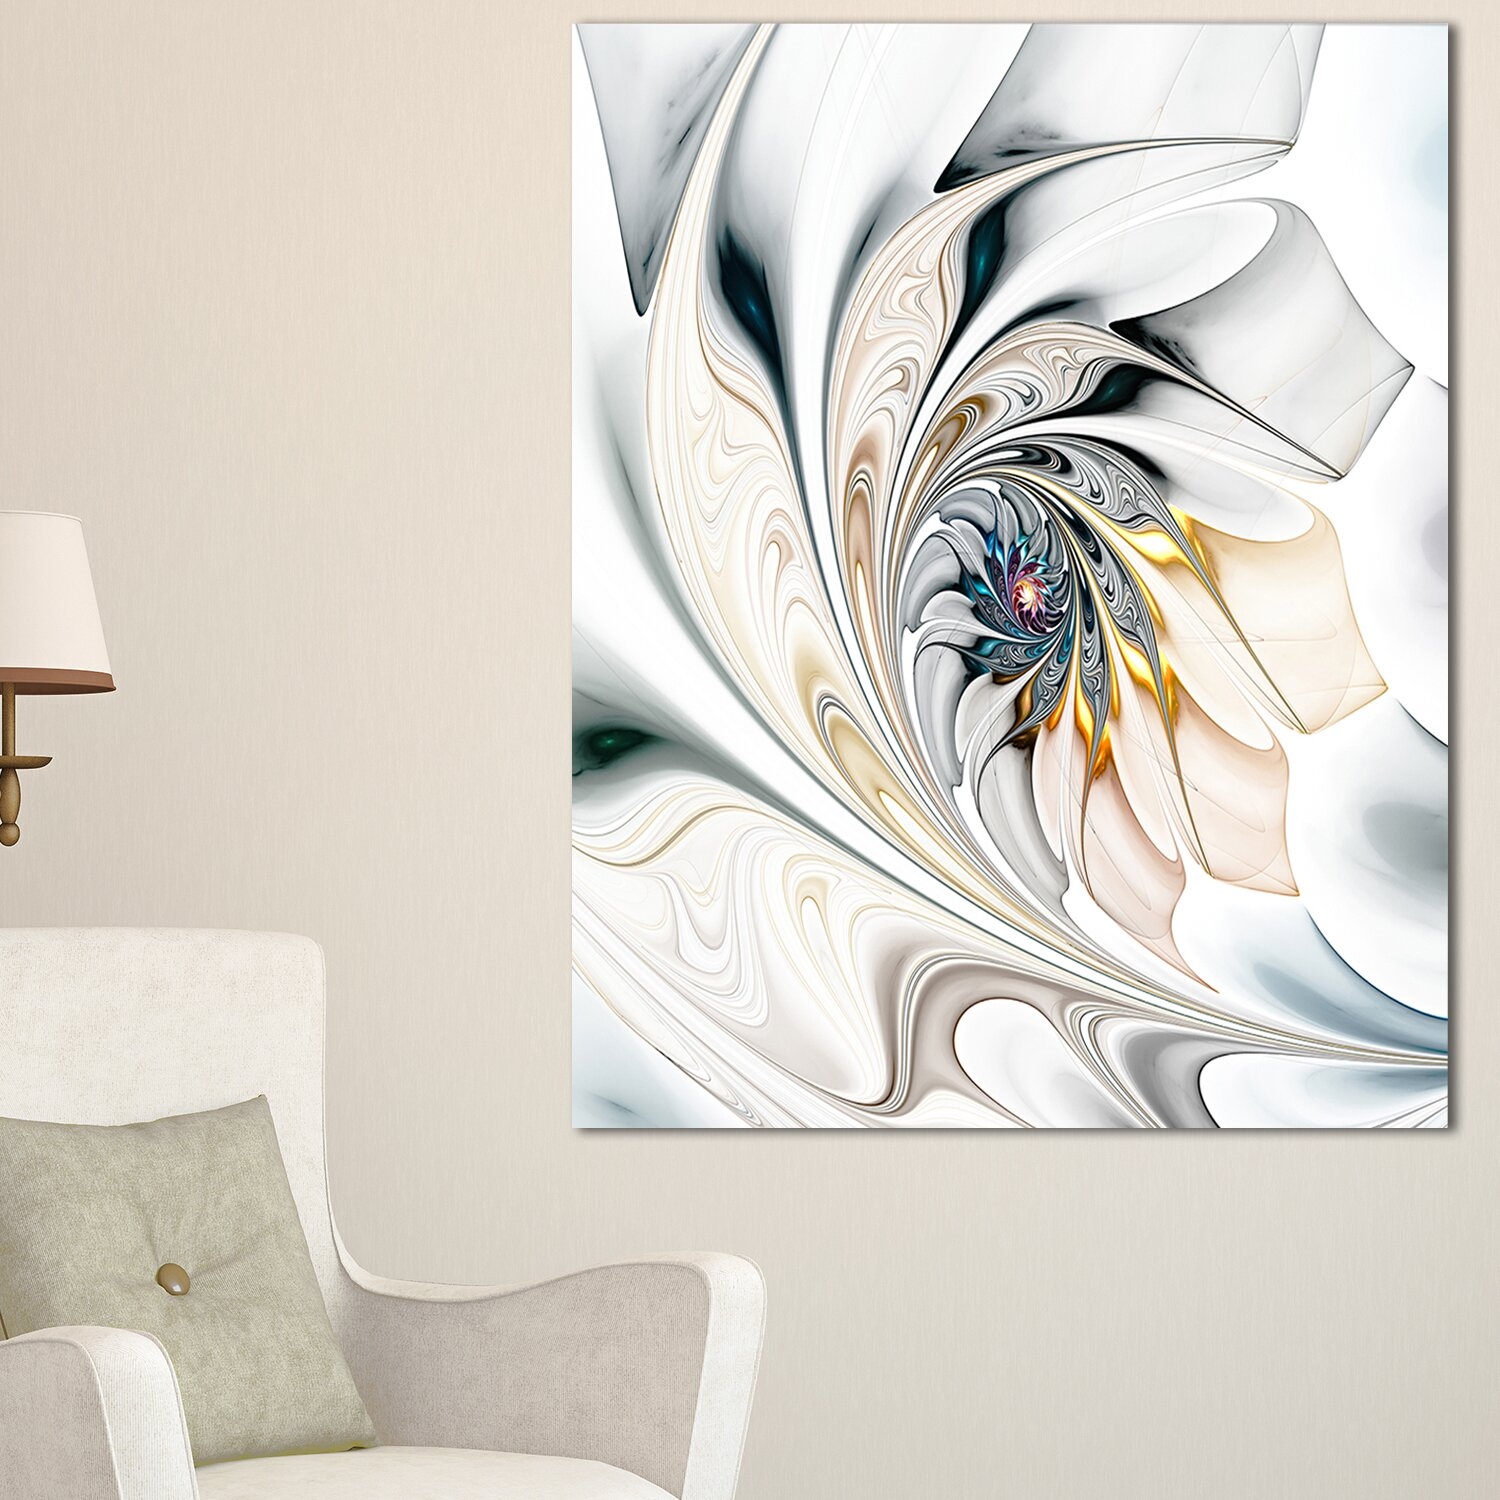 Designart White Stained Glass Floral Large Floral Graphic